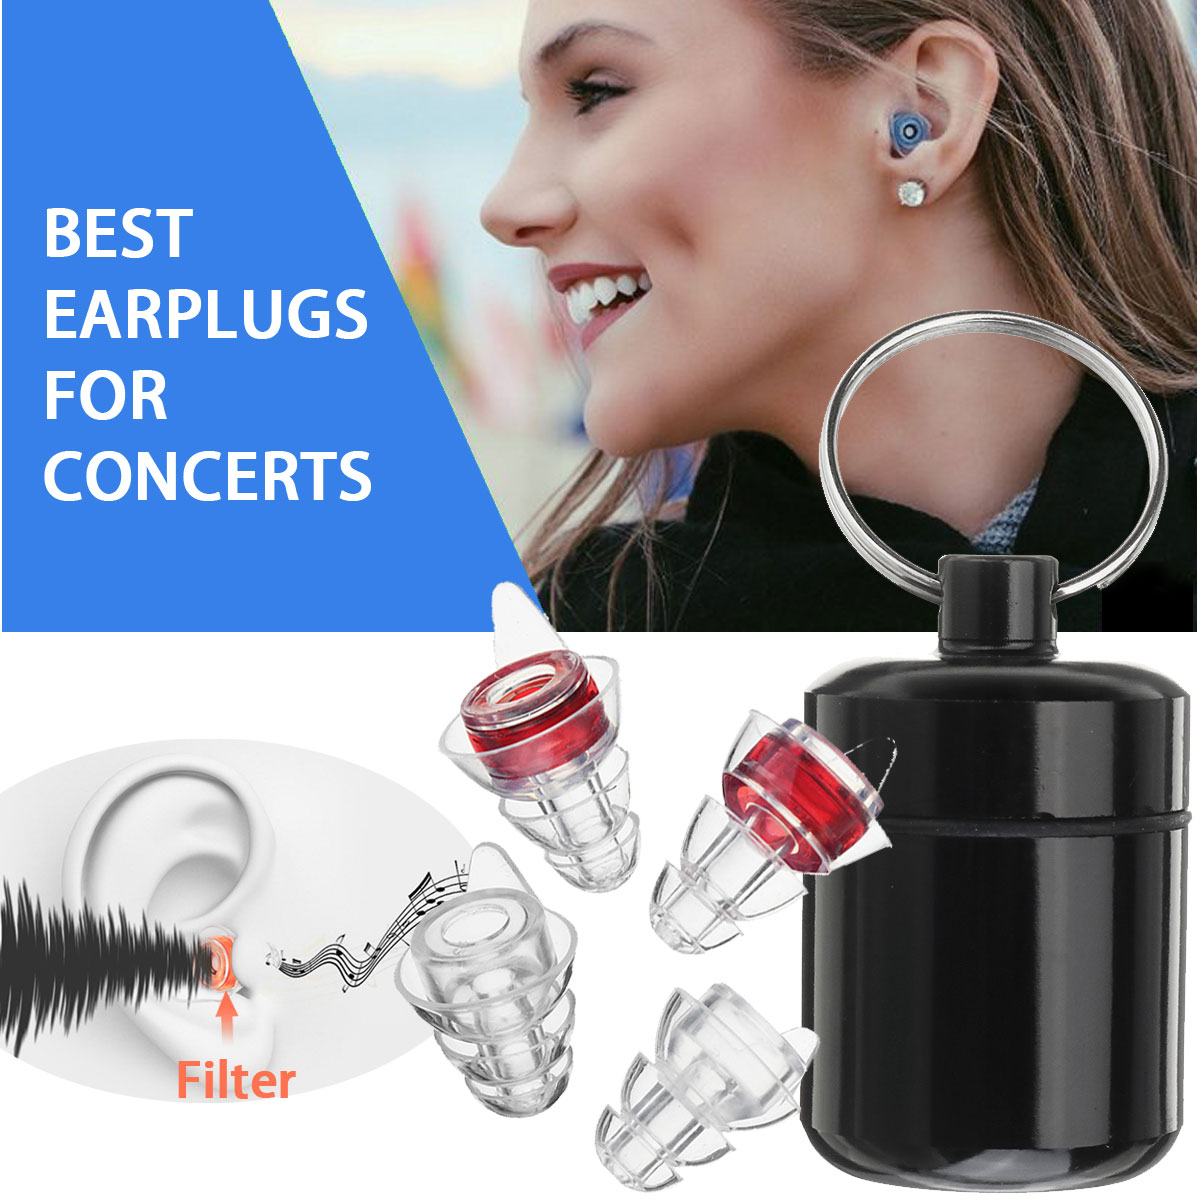 2 Pairs Reusable Silicone Ear Plugs Noise Cancelling Hearing Protection Earplugs For Concerts Sleeping Bar DJ Motor Sports